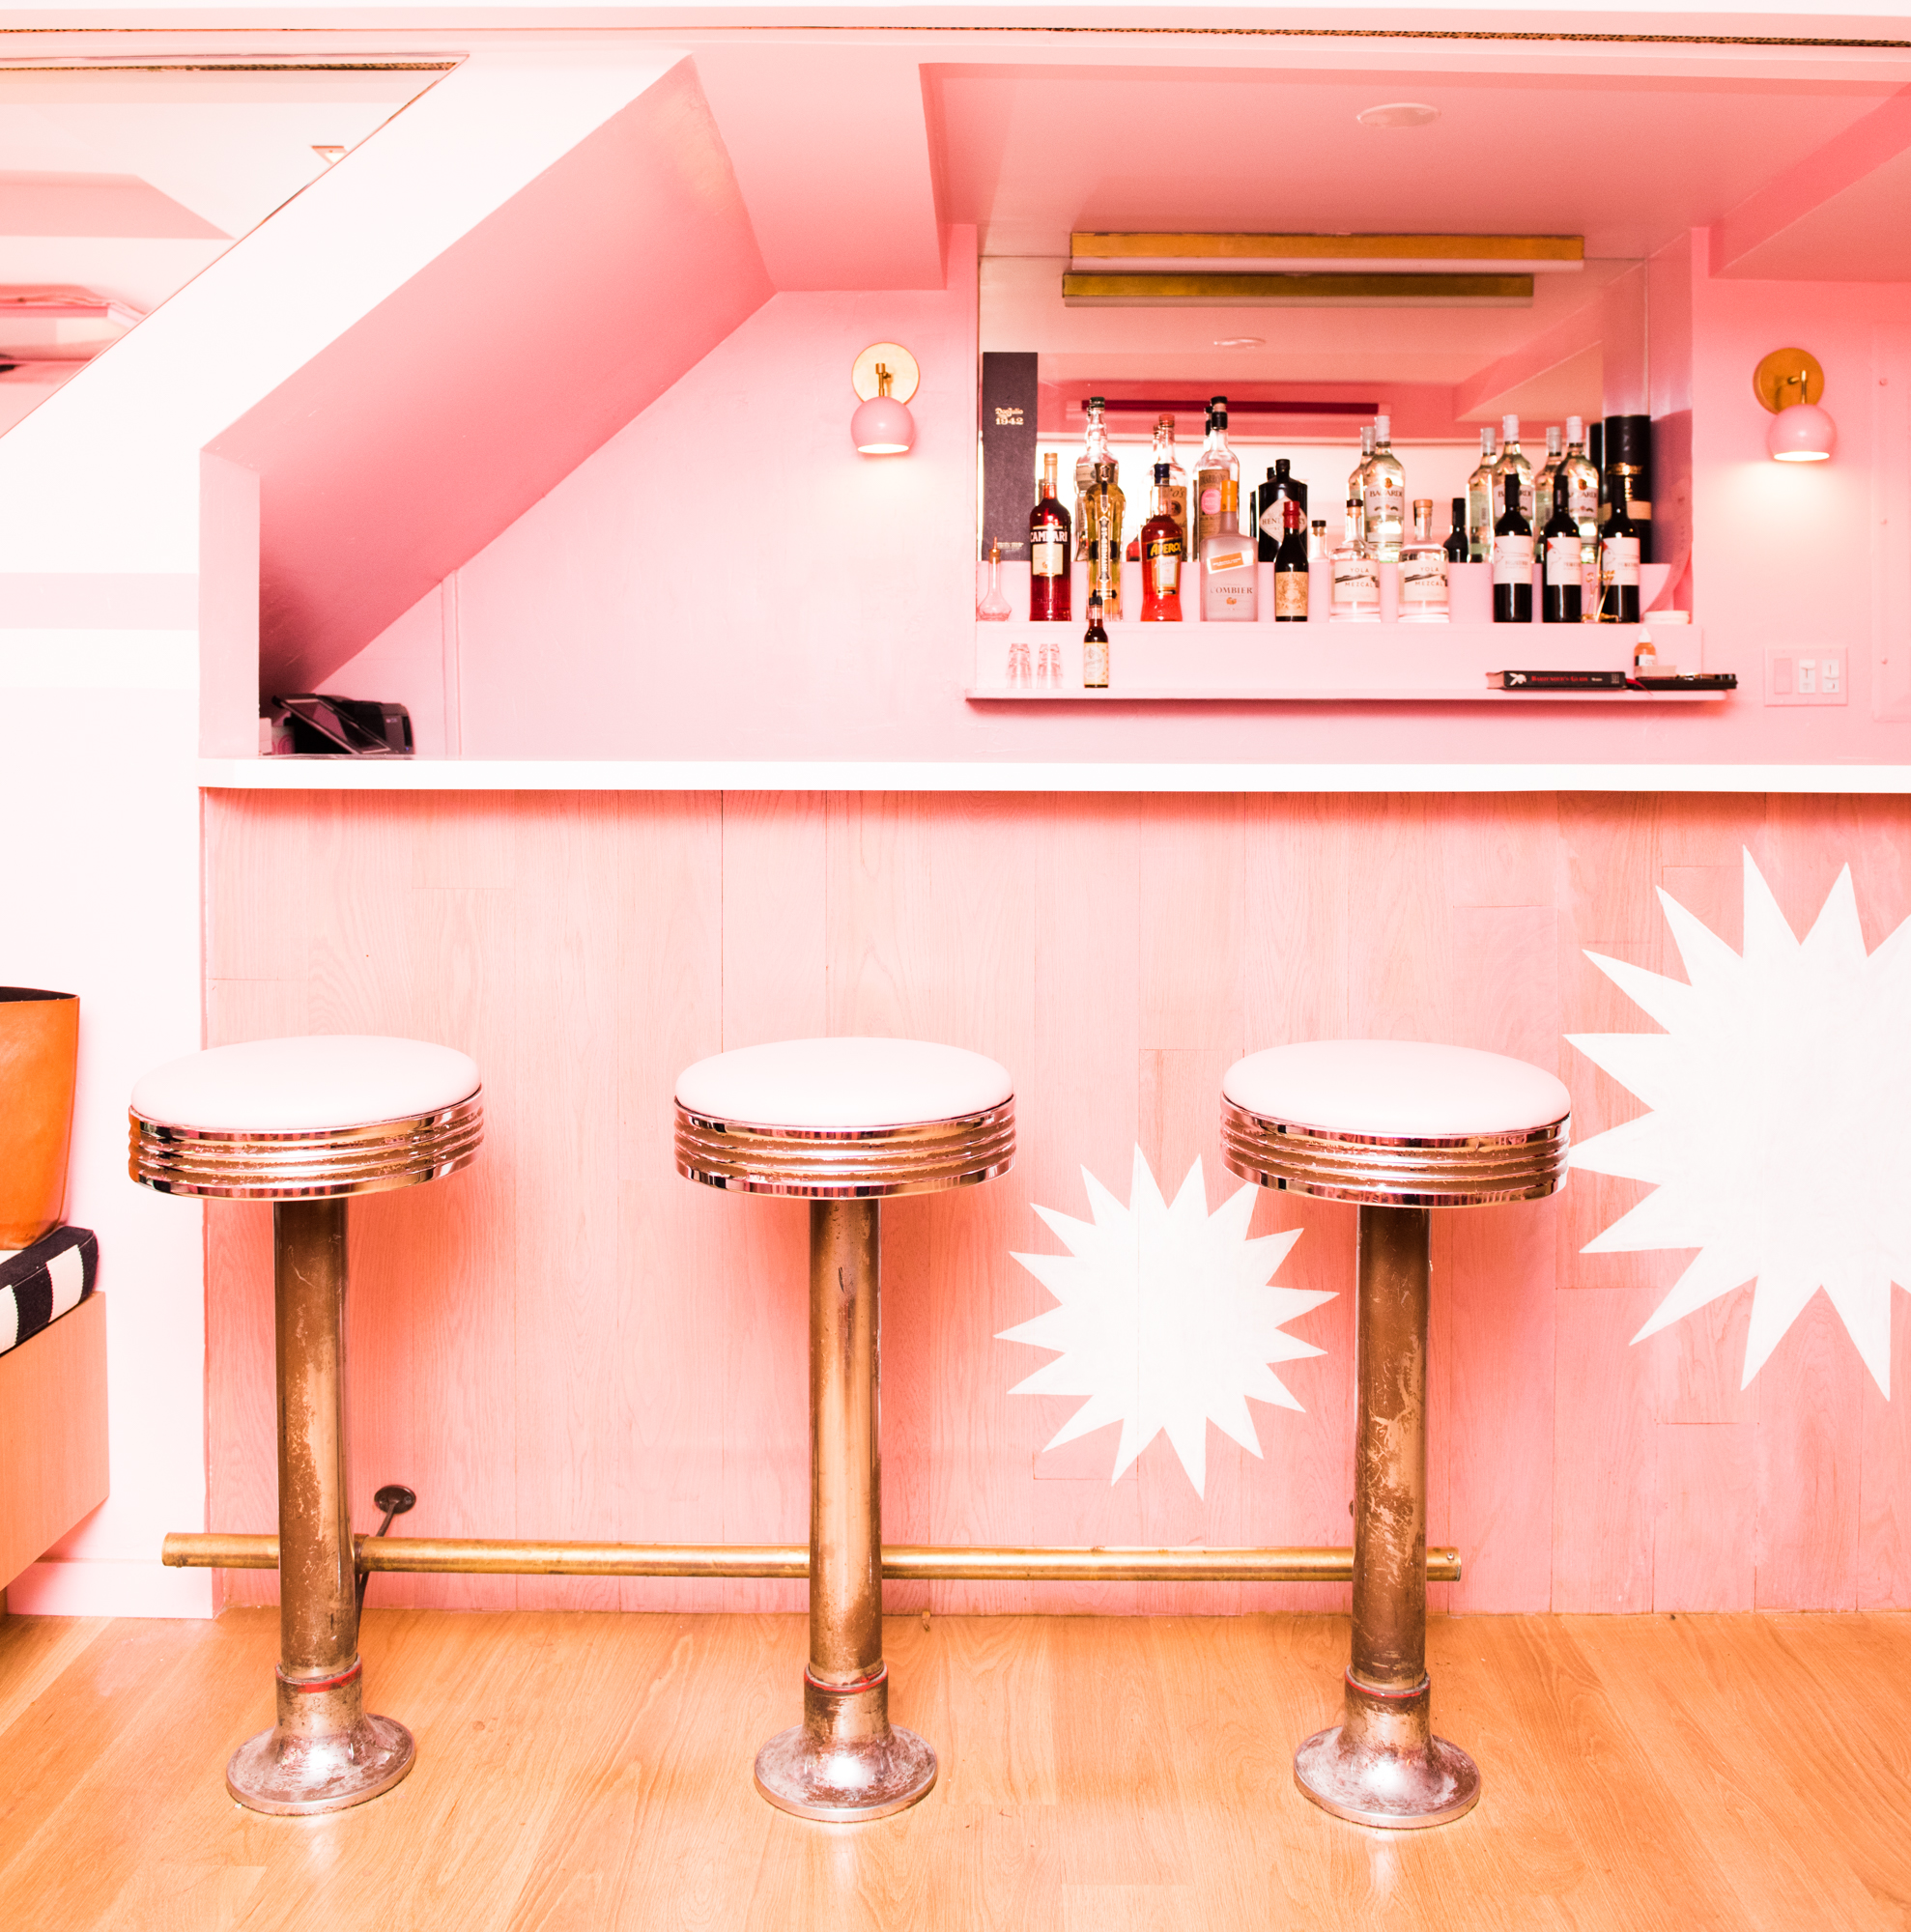 The bar at Pietro Nolita - ours is a strawberry dacquiri/Photo:   Jake Rosenberg   for The Coveteur